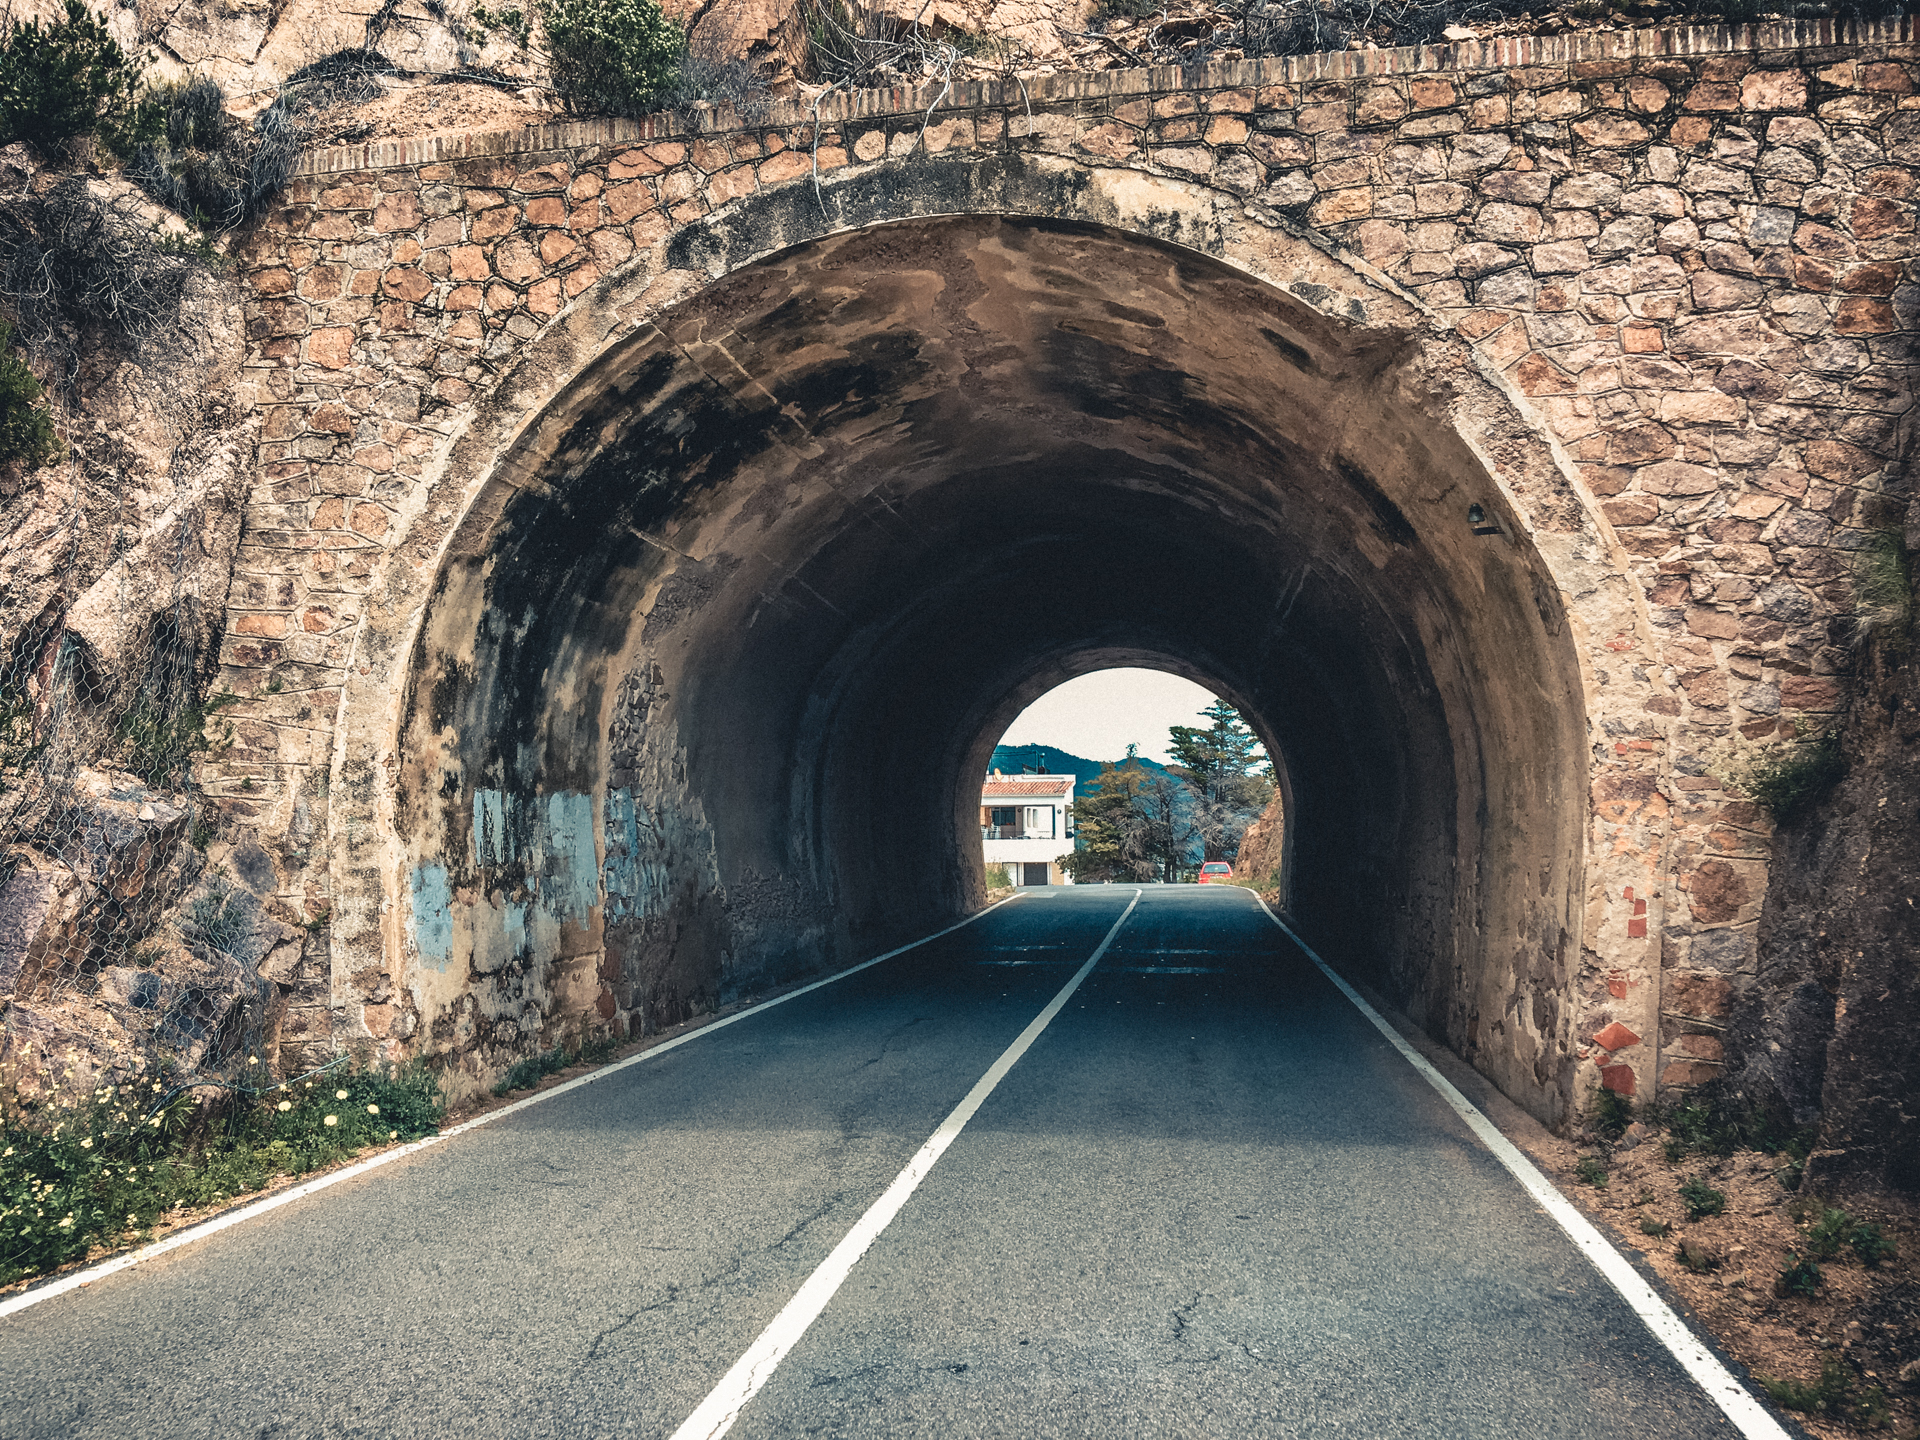 Cool tunnel!